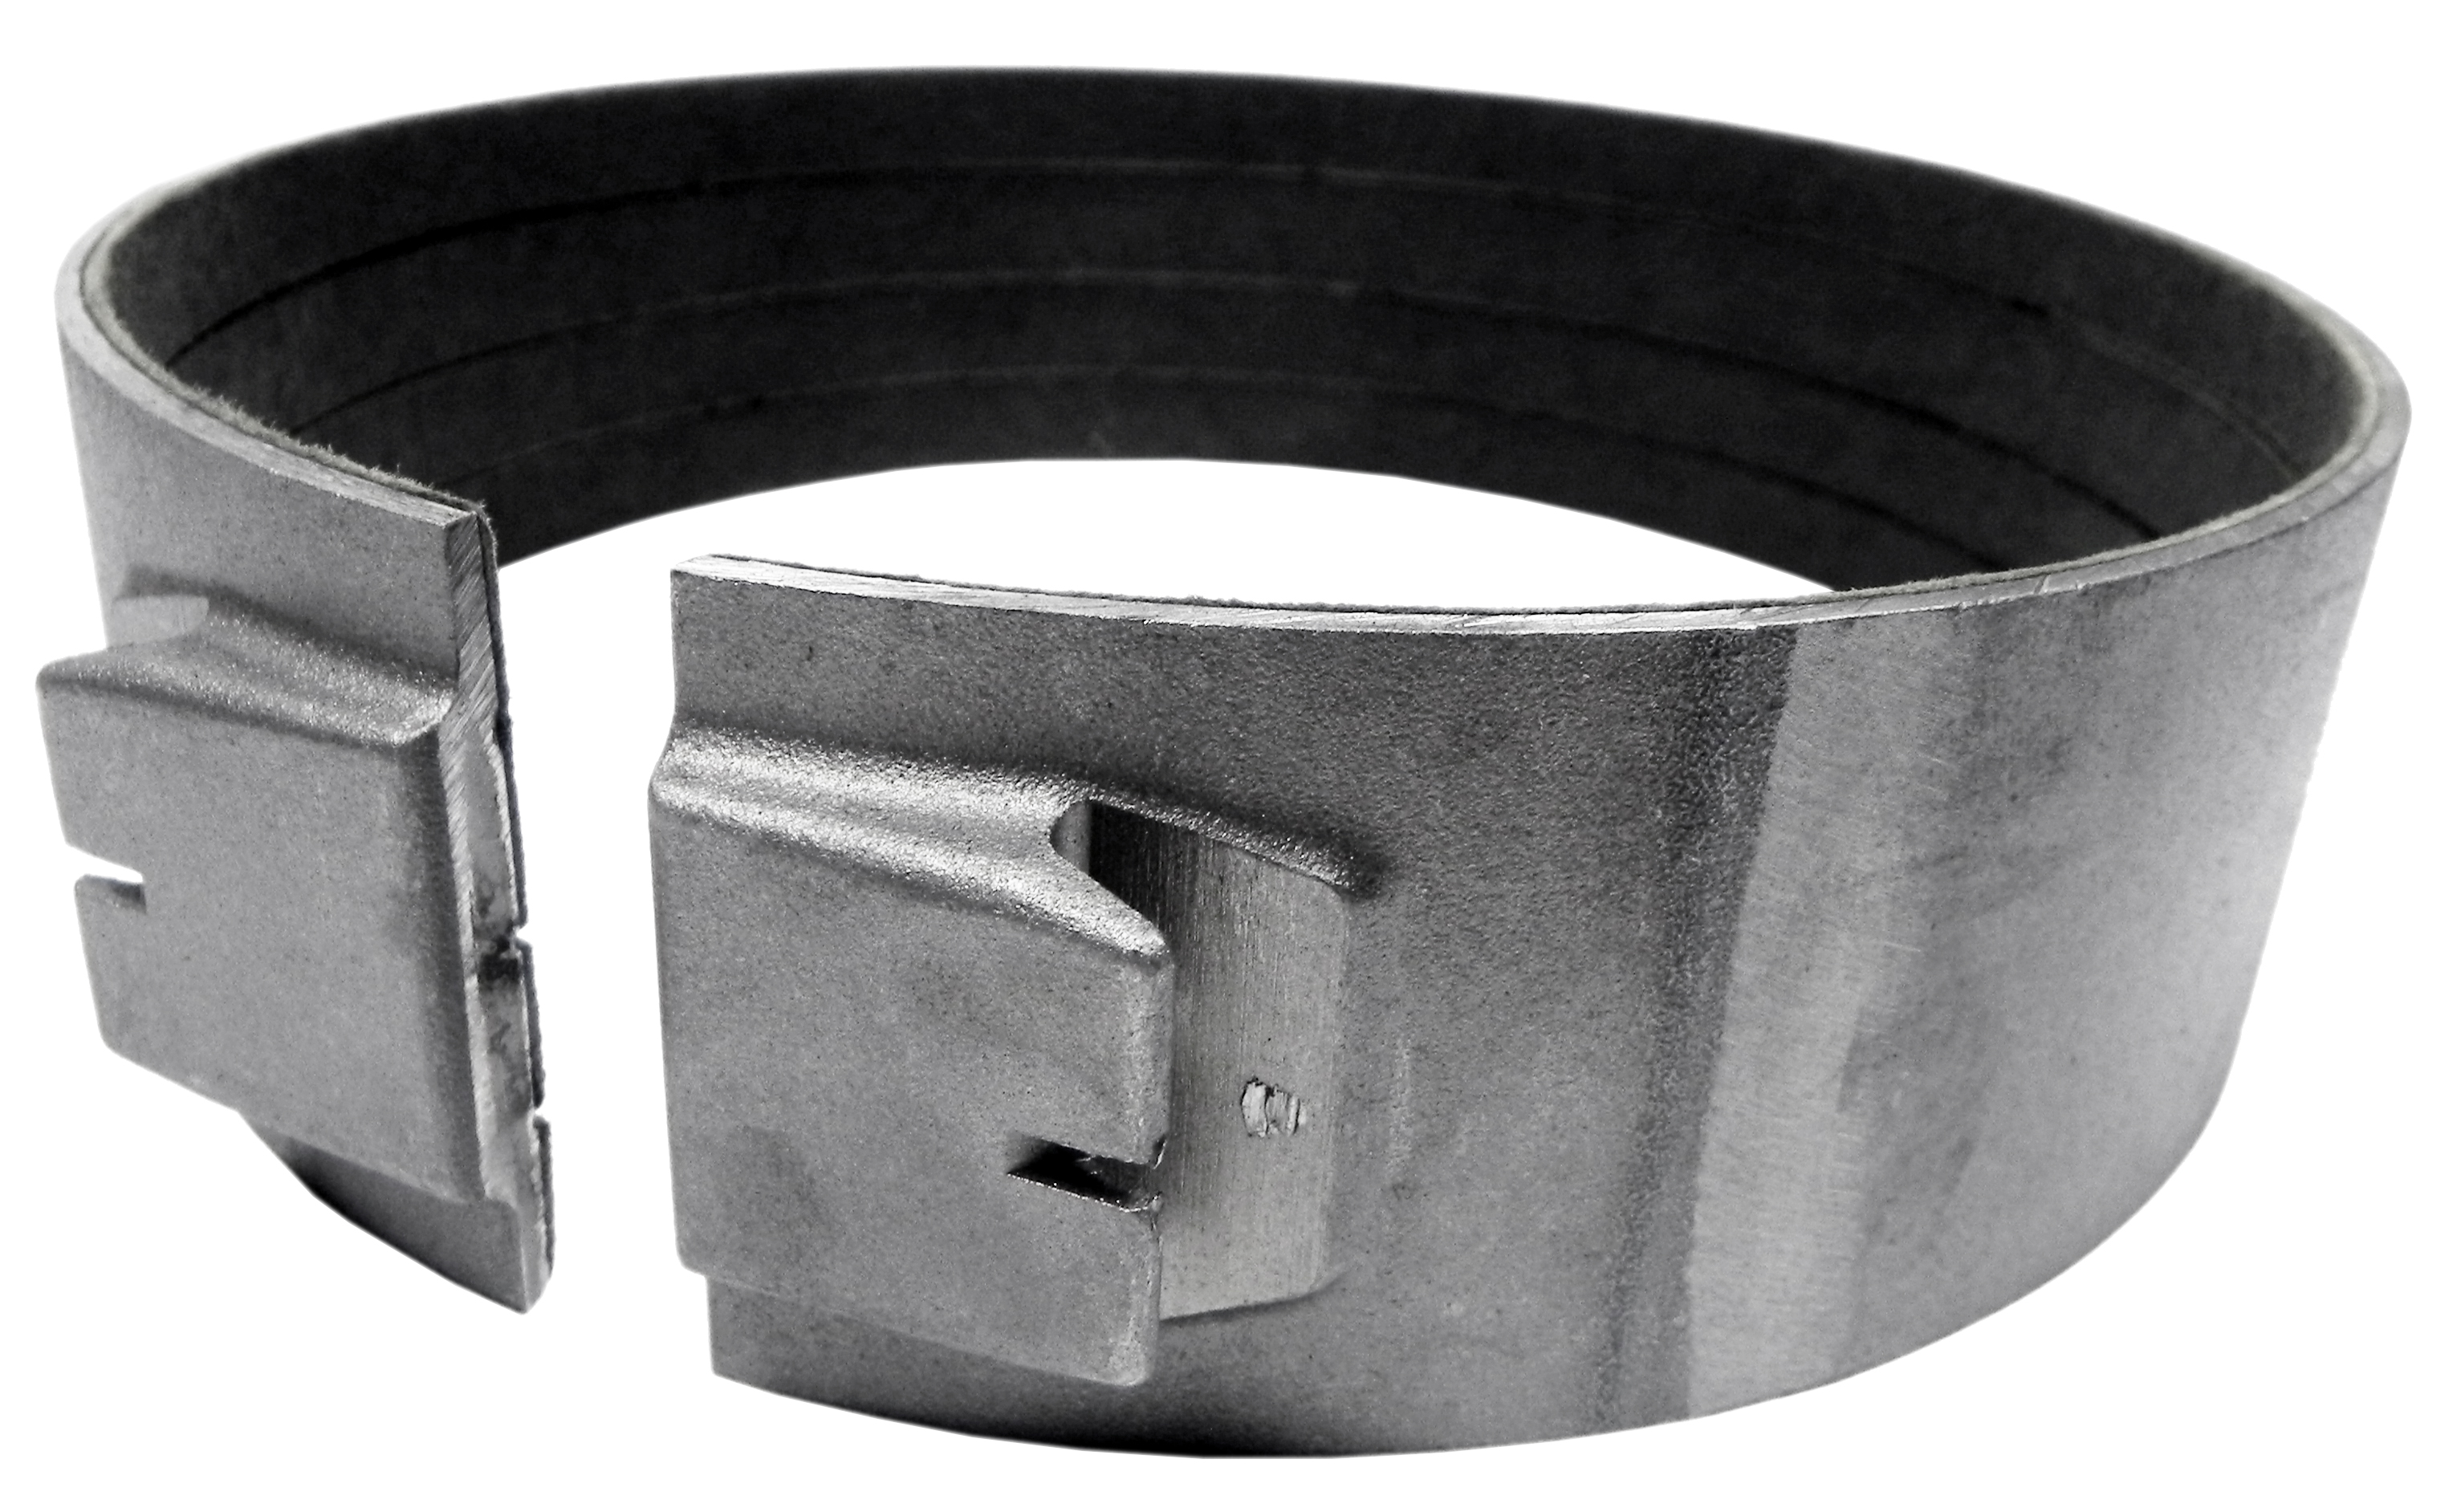 TF8, A727 (62-99) A518 / 46RH, A518ES / 46RE, A618 / 47RH, A618ES / 47RE, 48RE Intermediate (Wide) Pro-Series  Transmission Band